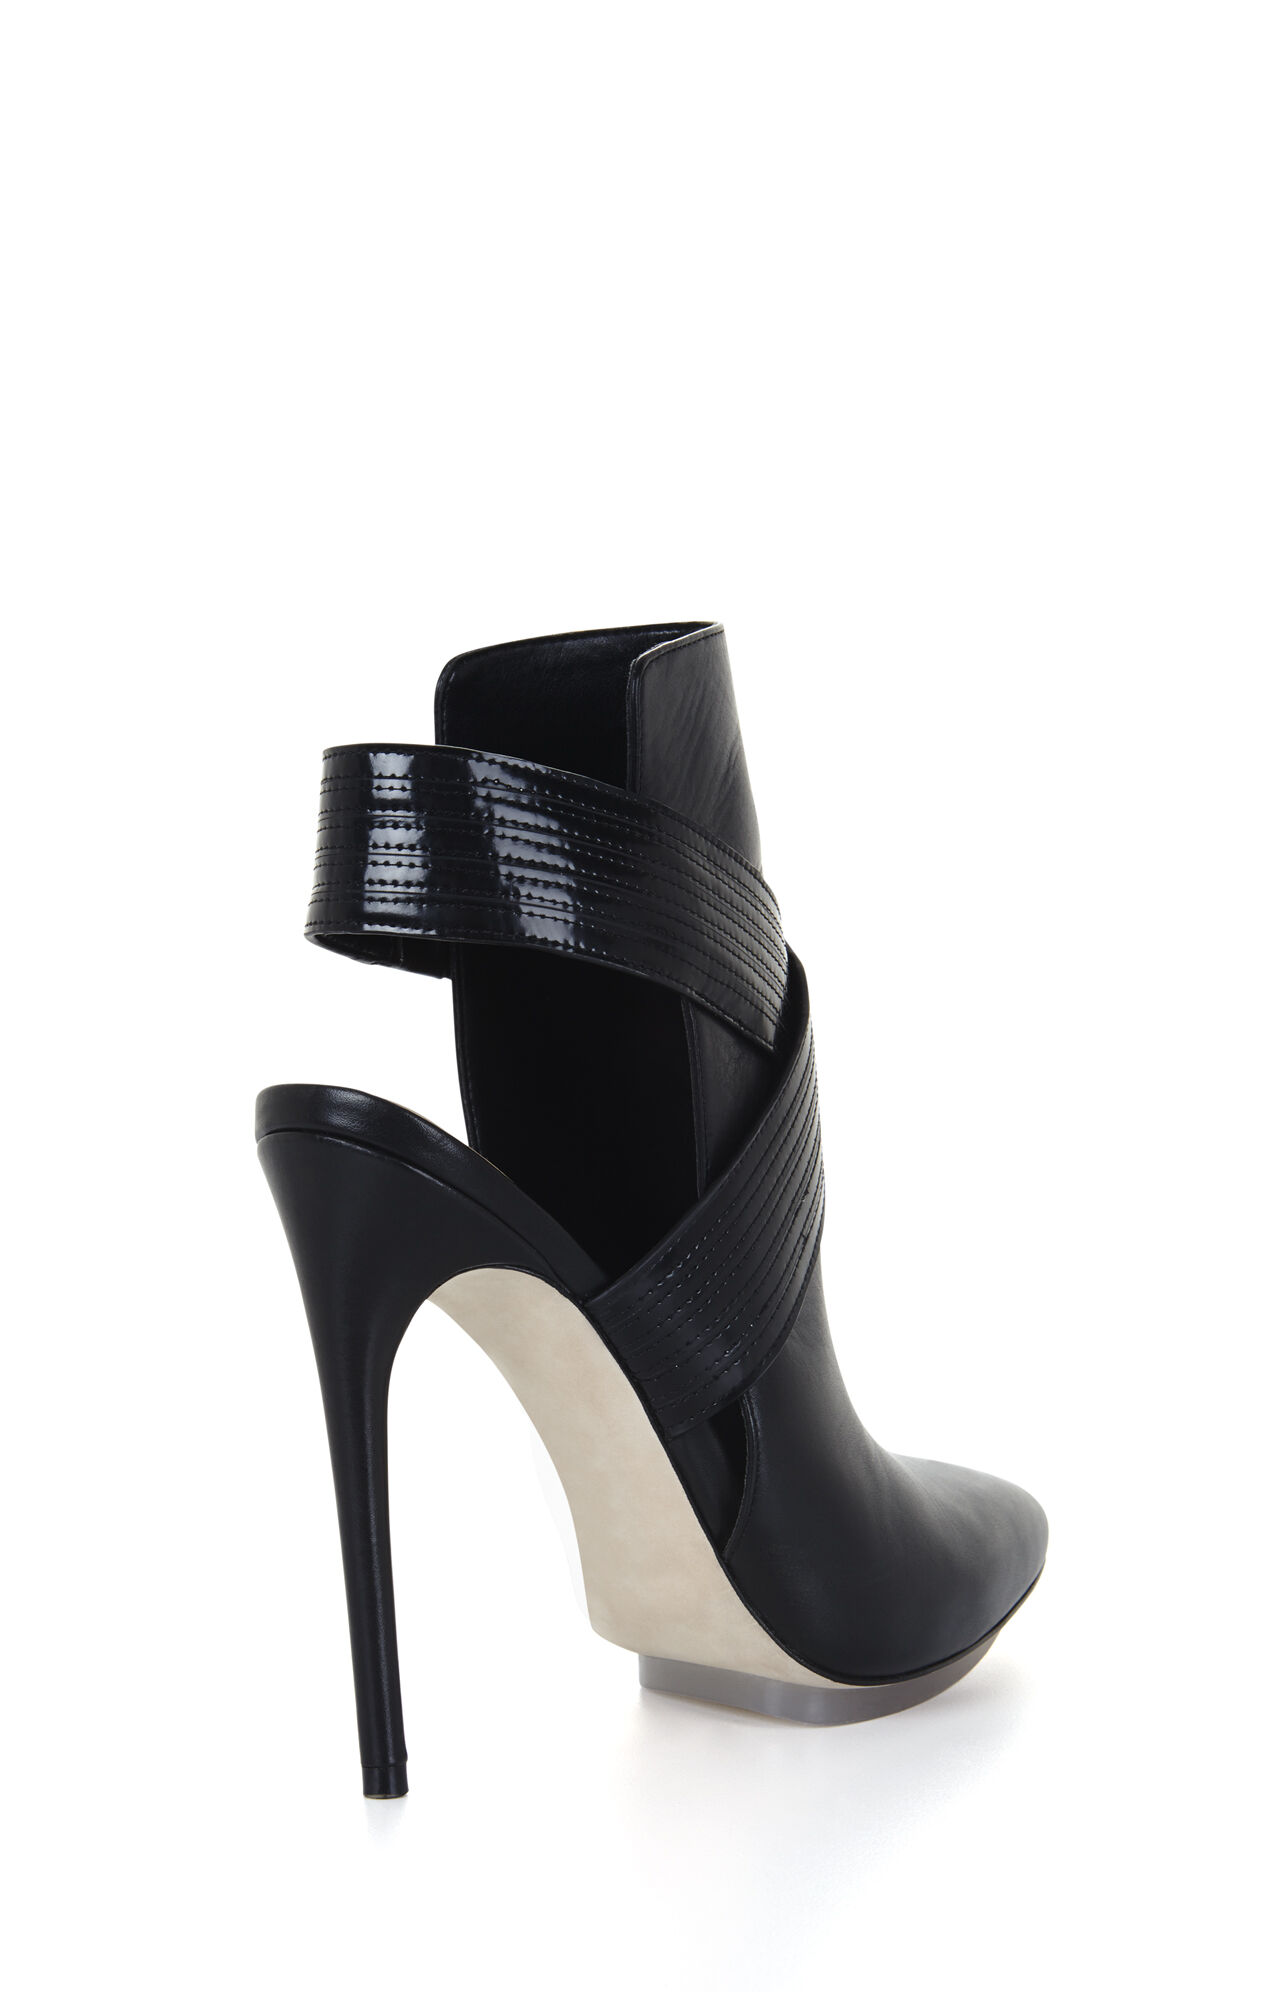 Runway Krimp High-Heel Pointed-Toe Day Boot